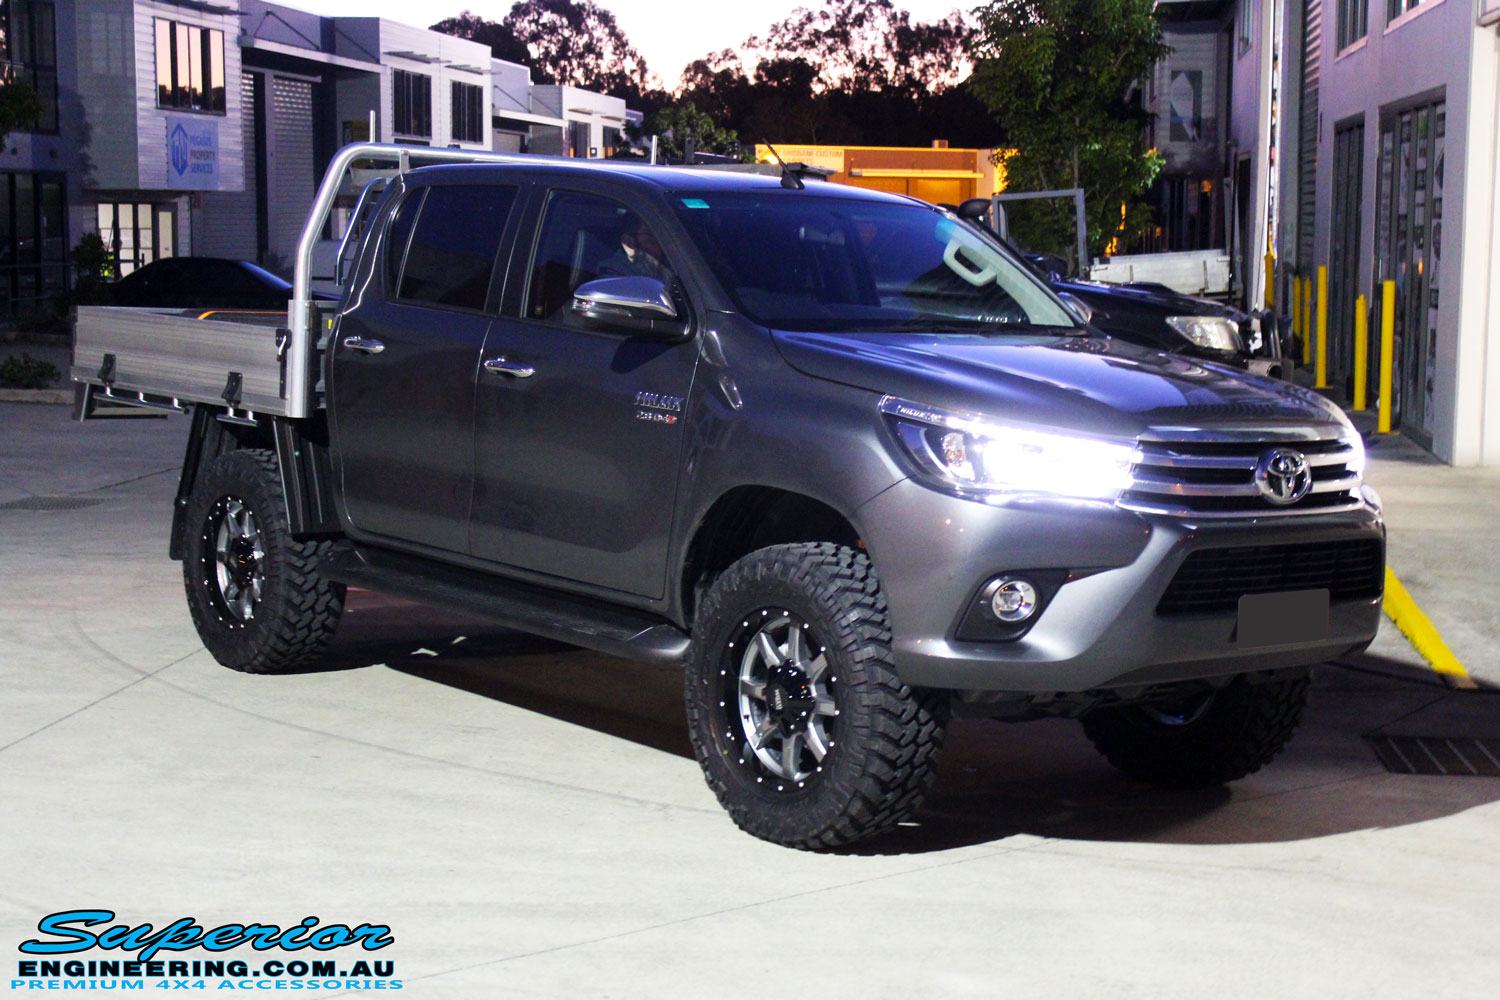 "Right front side view of a Toyota Revo Hilux Dual Cab in Grey after fitment of a Fox 2.0 Performance Series IFP 2"" Inch Lift Kit + Upper Control Arms"